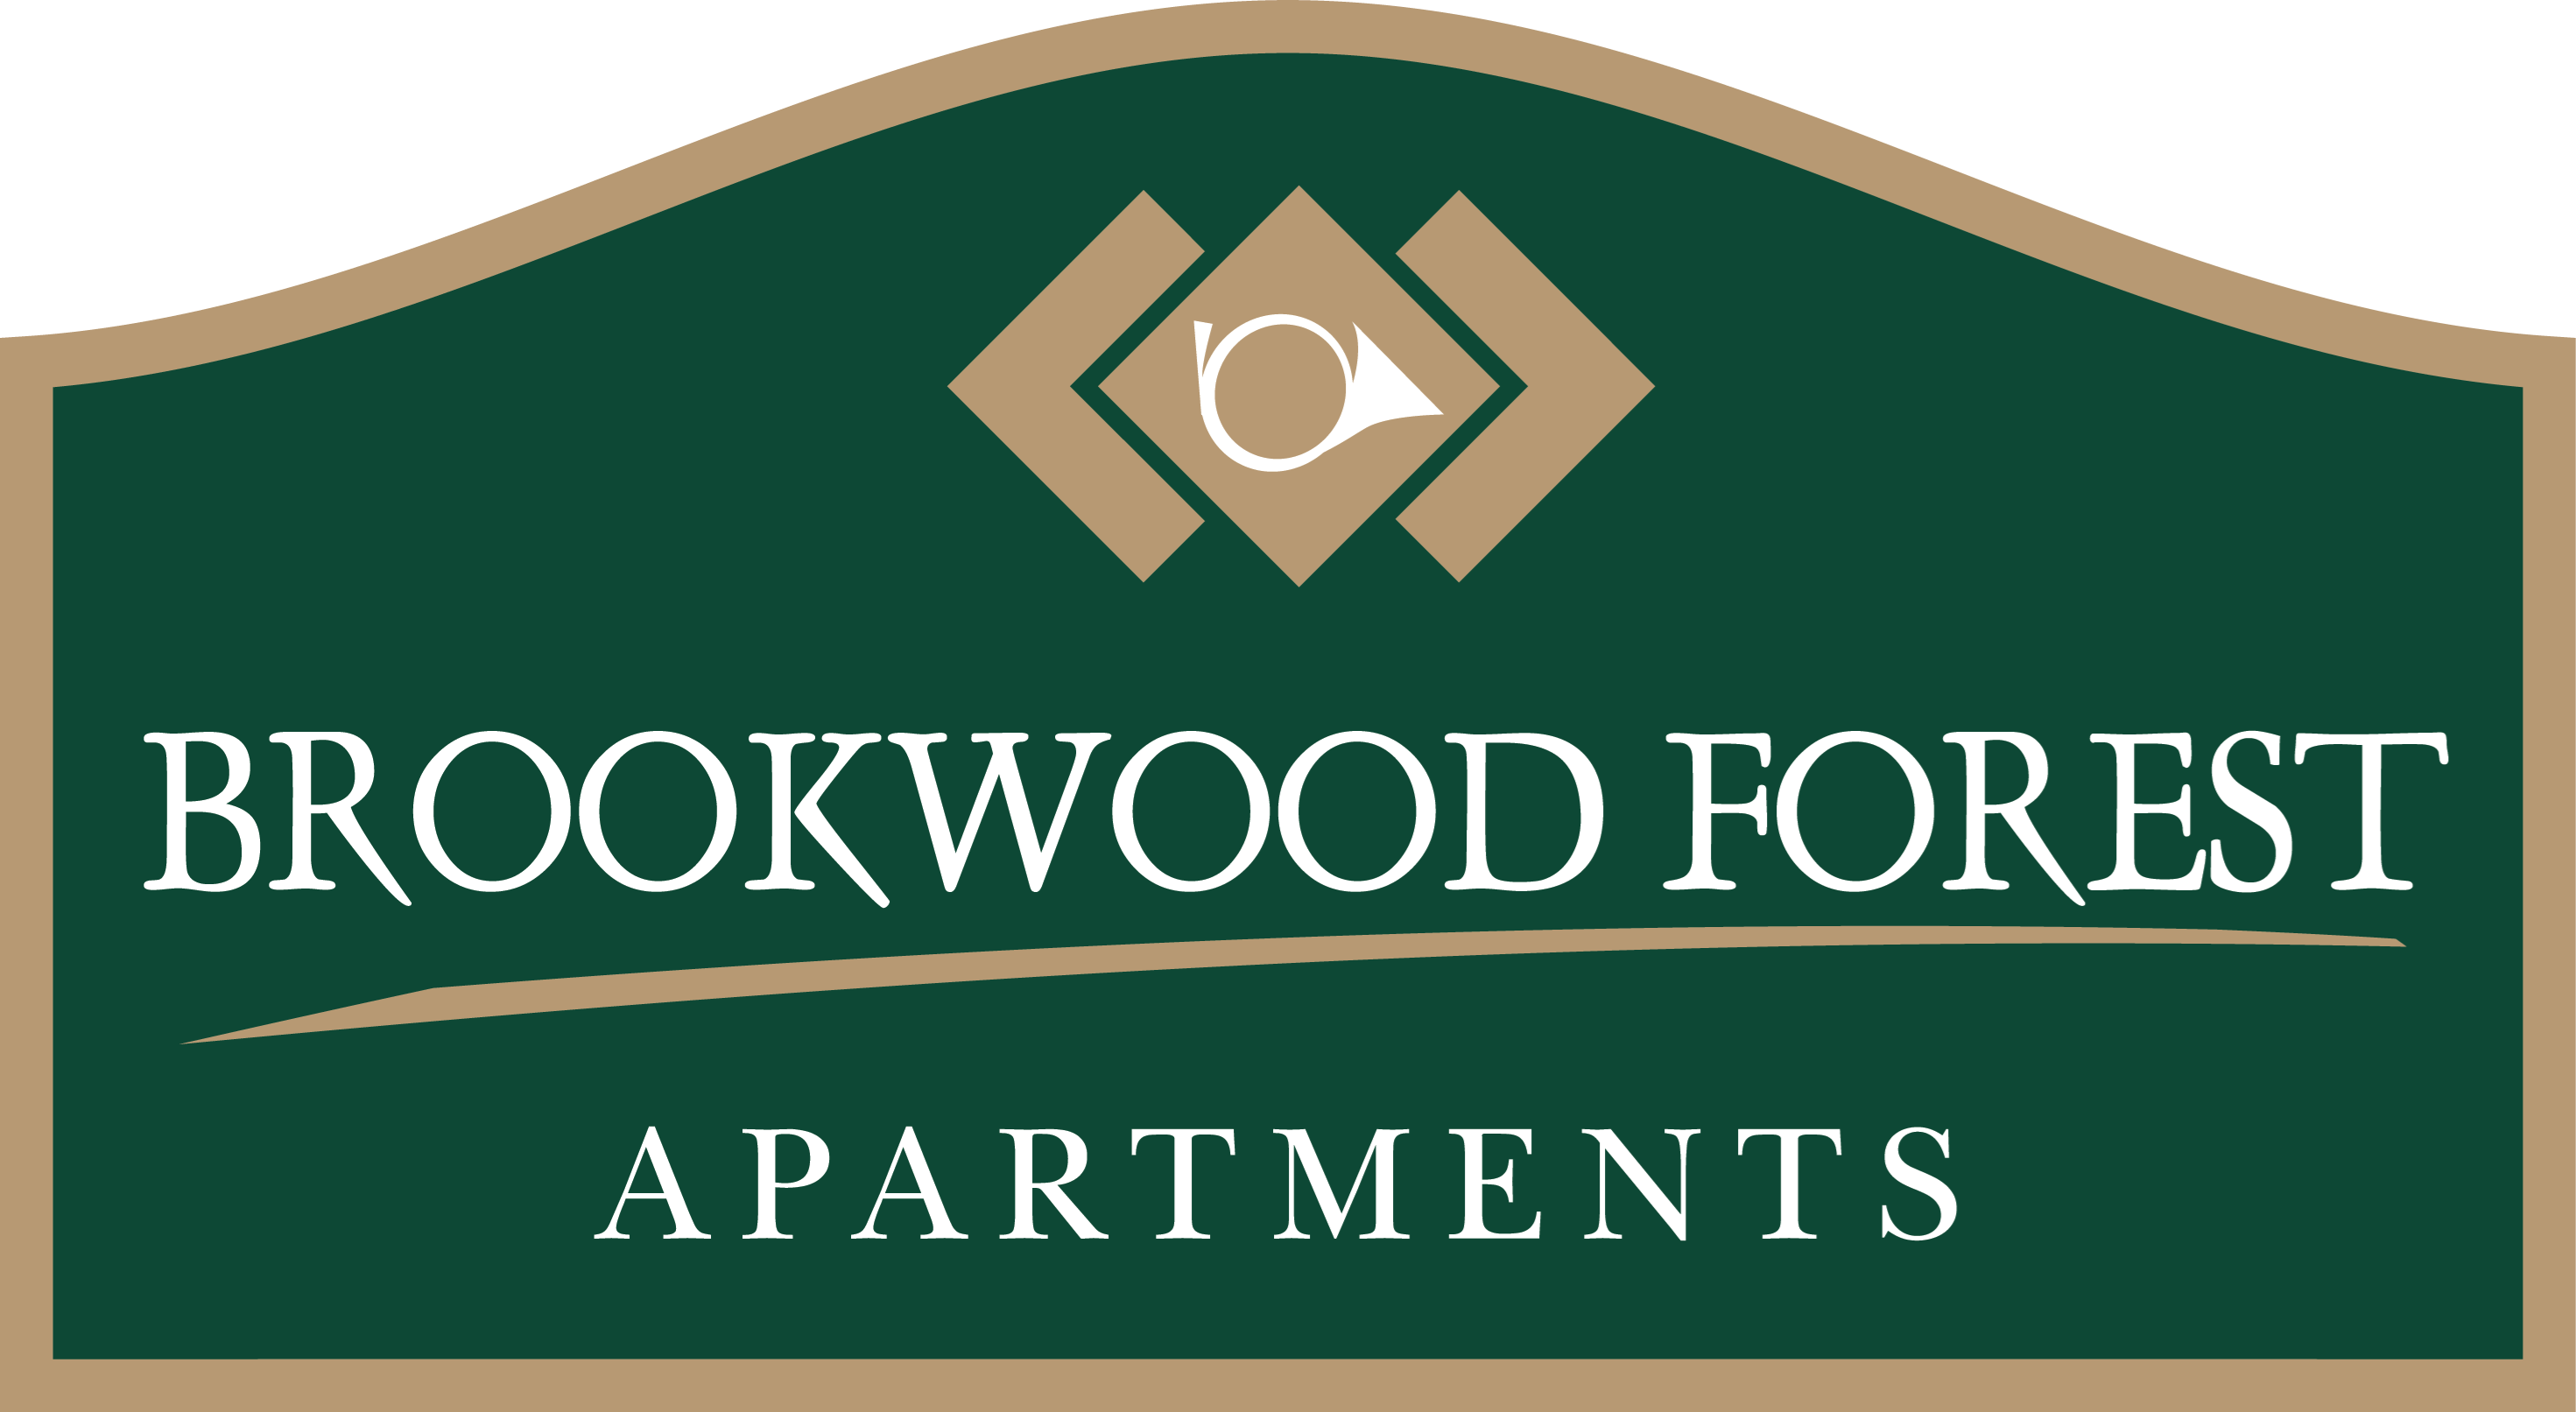 Brookwood Forest Apartments for rent in Jacksonville, FL. Make this community your new home or visit other ConcordRENTS communities at ConcordRENTS.com. Logo